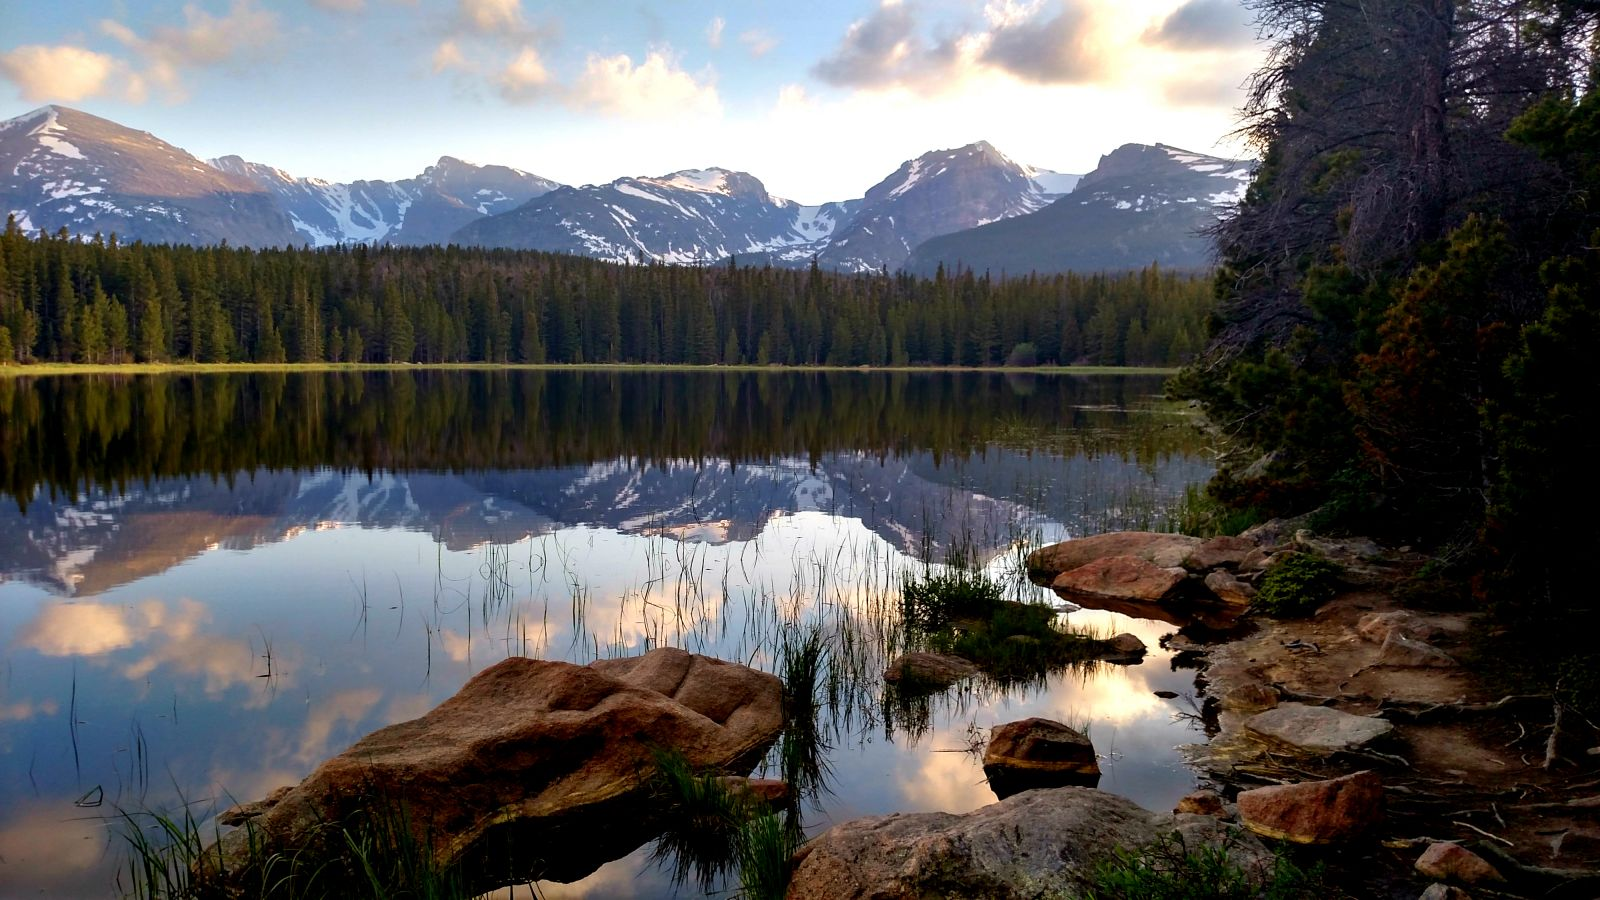 houses for sale estes park,log home estes park,estes park realtor,estes park real estate,homes for sale estes park,